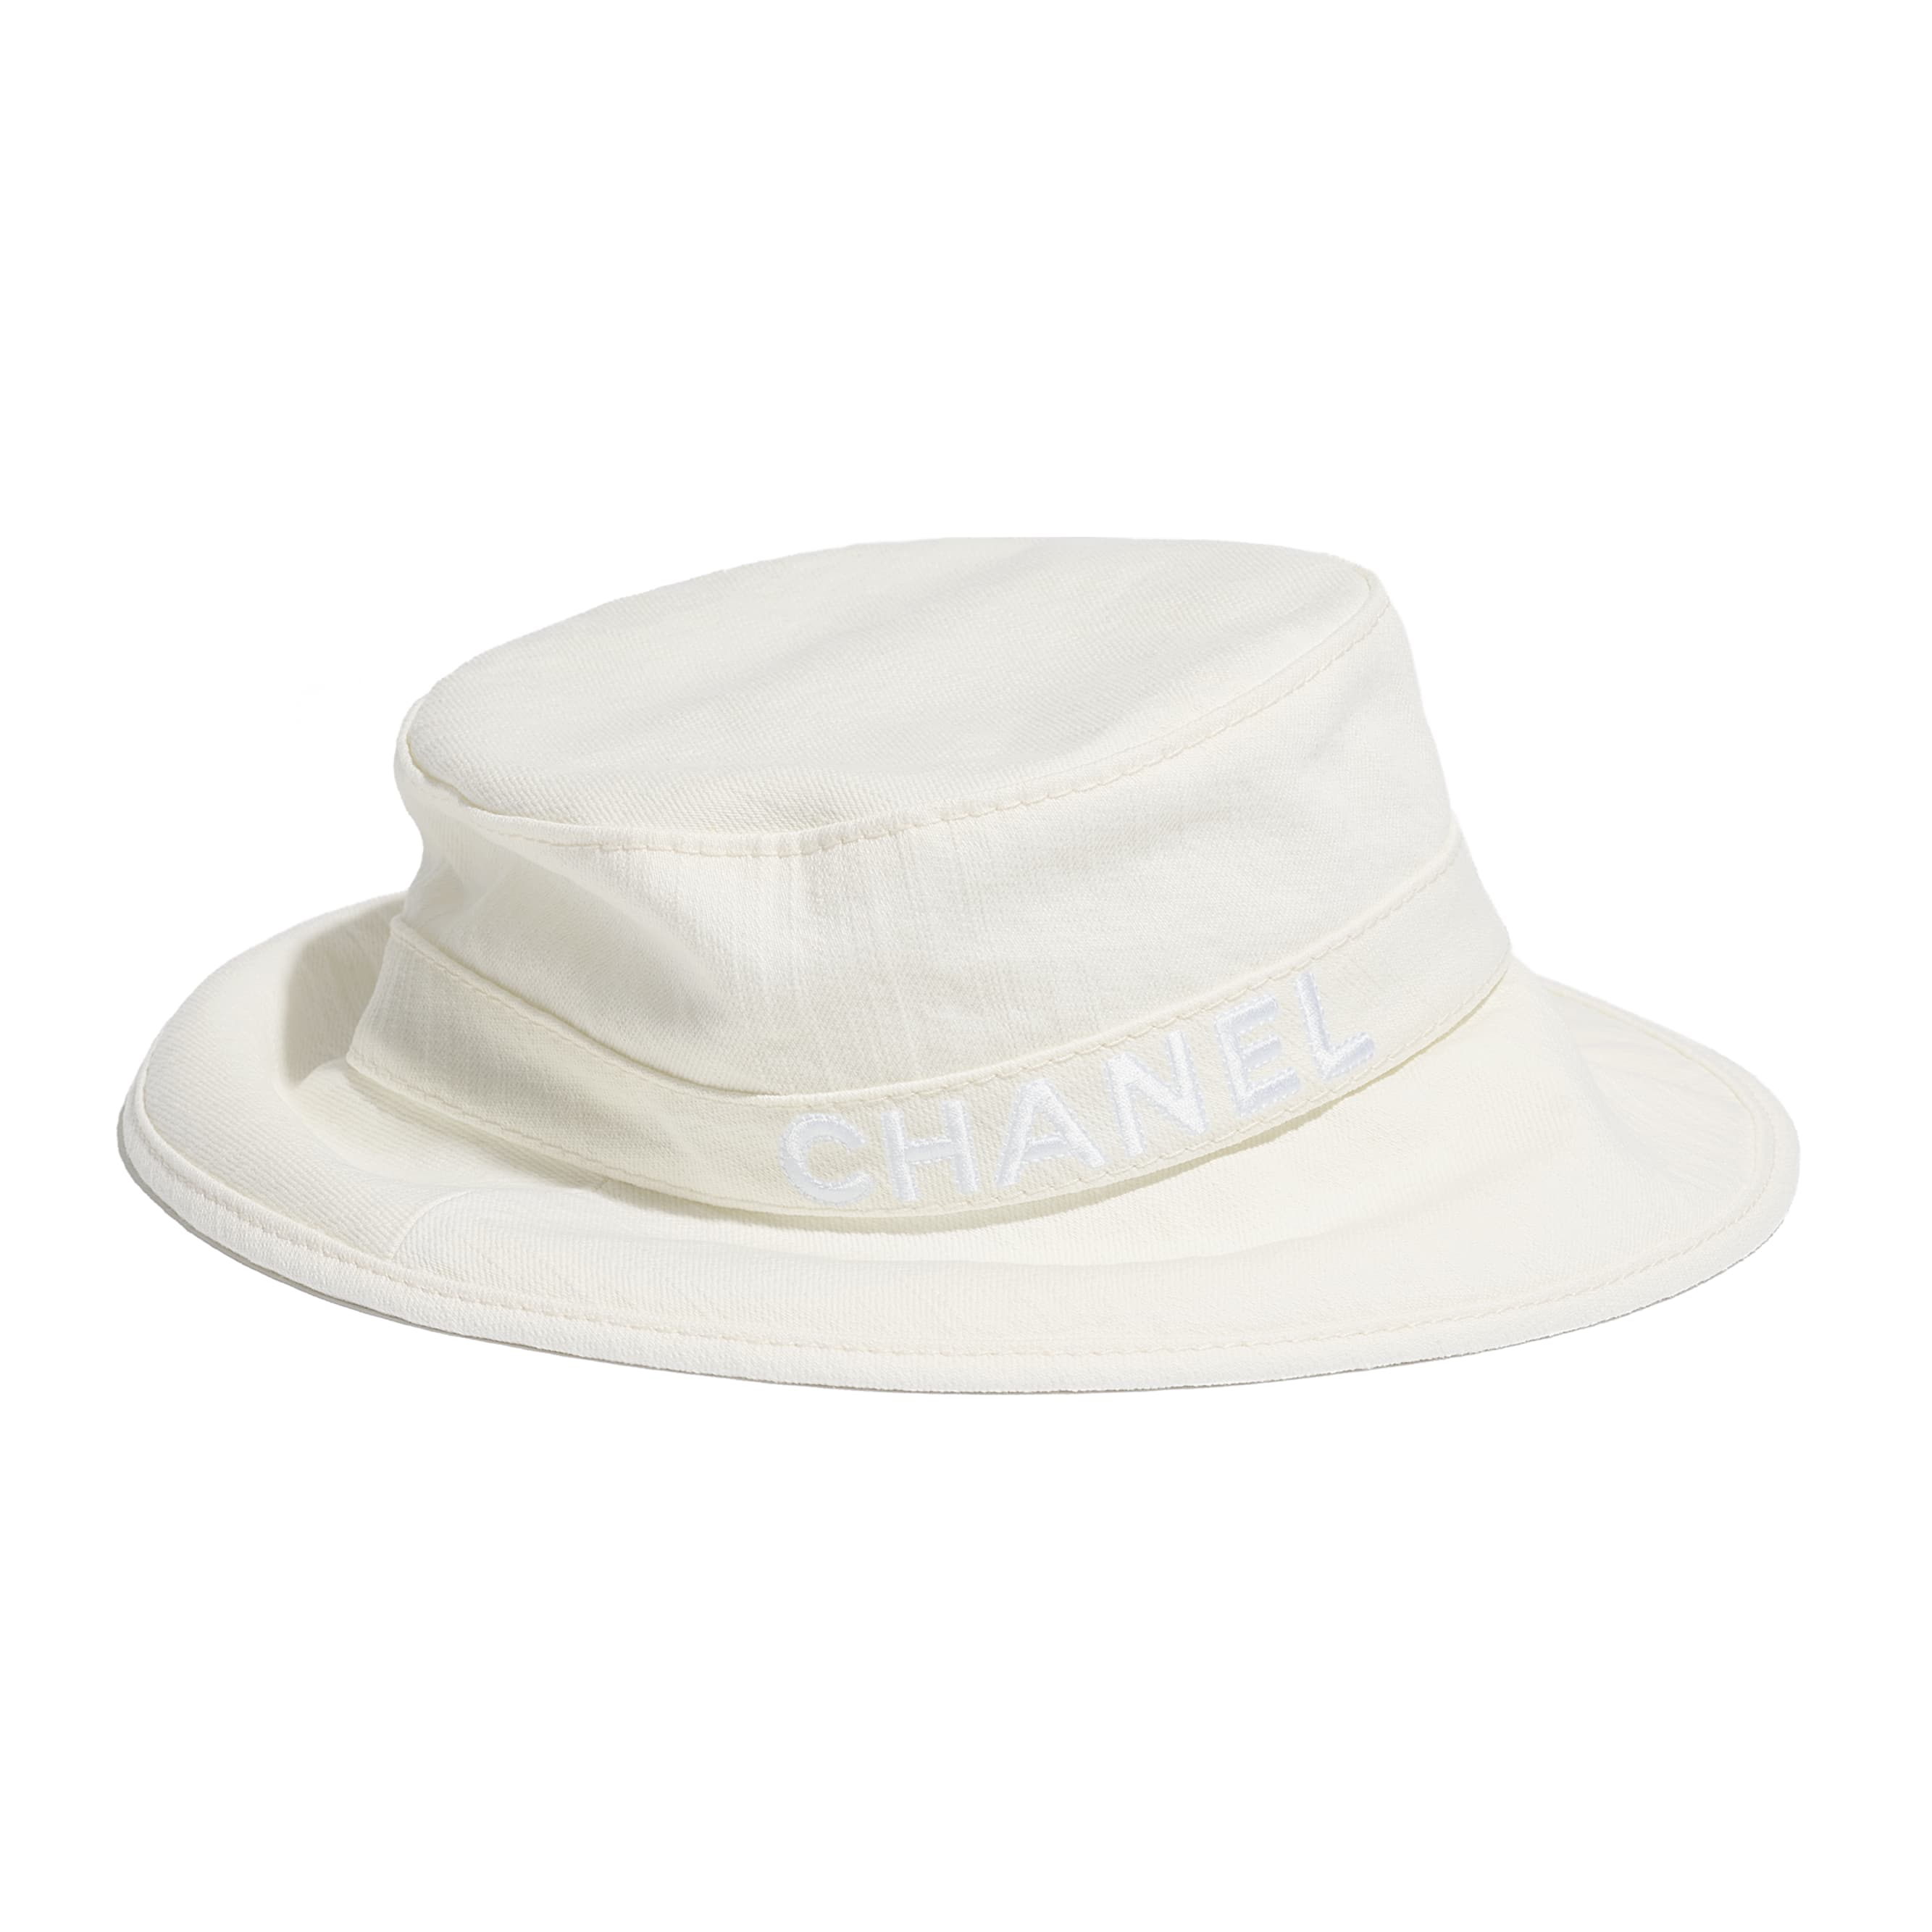 Hat - White - Cotton - CHANEL - Alternative view - see standard sized version